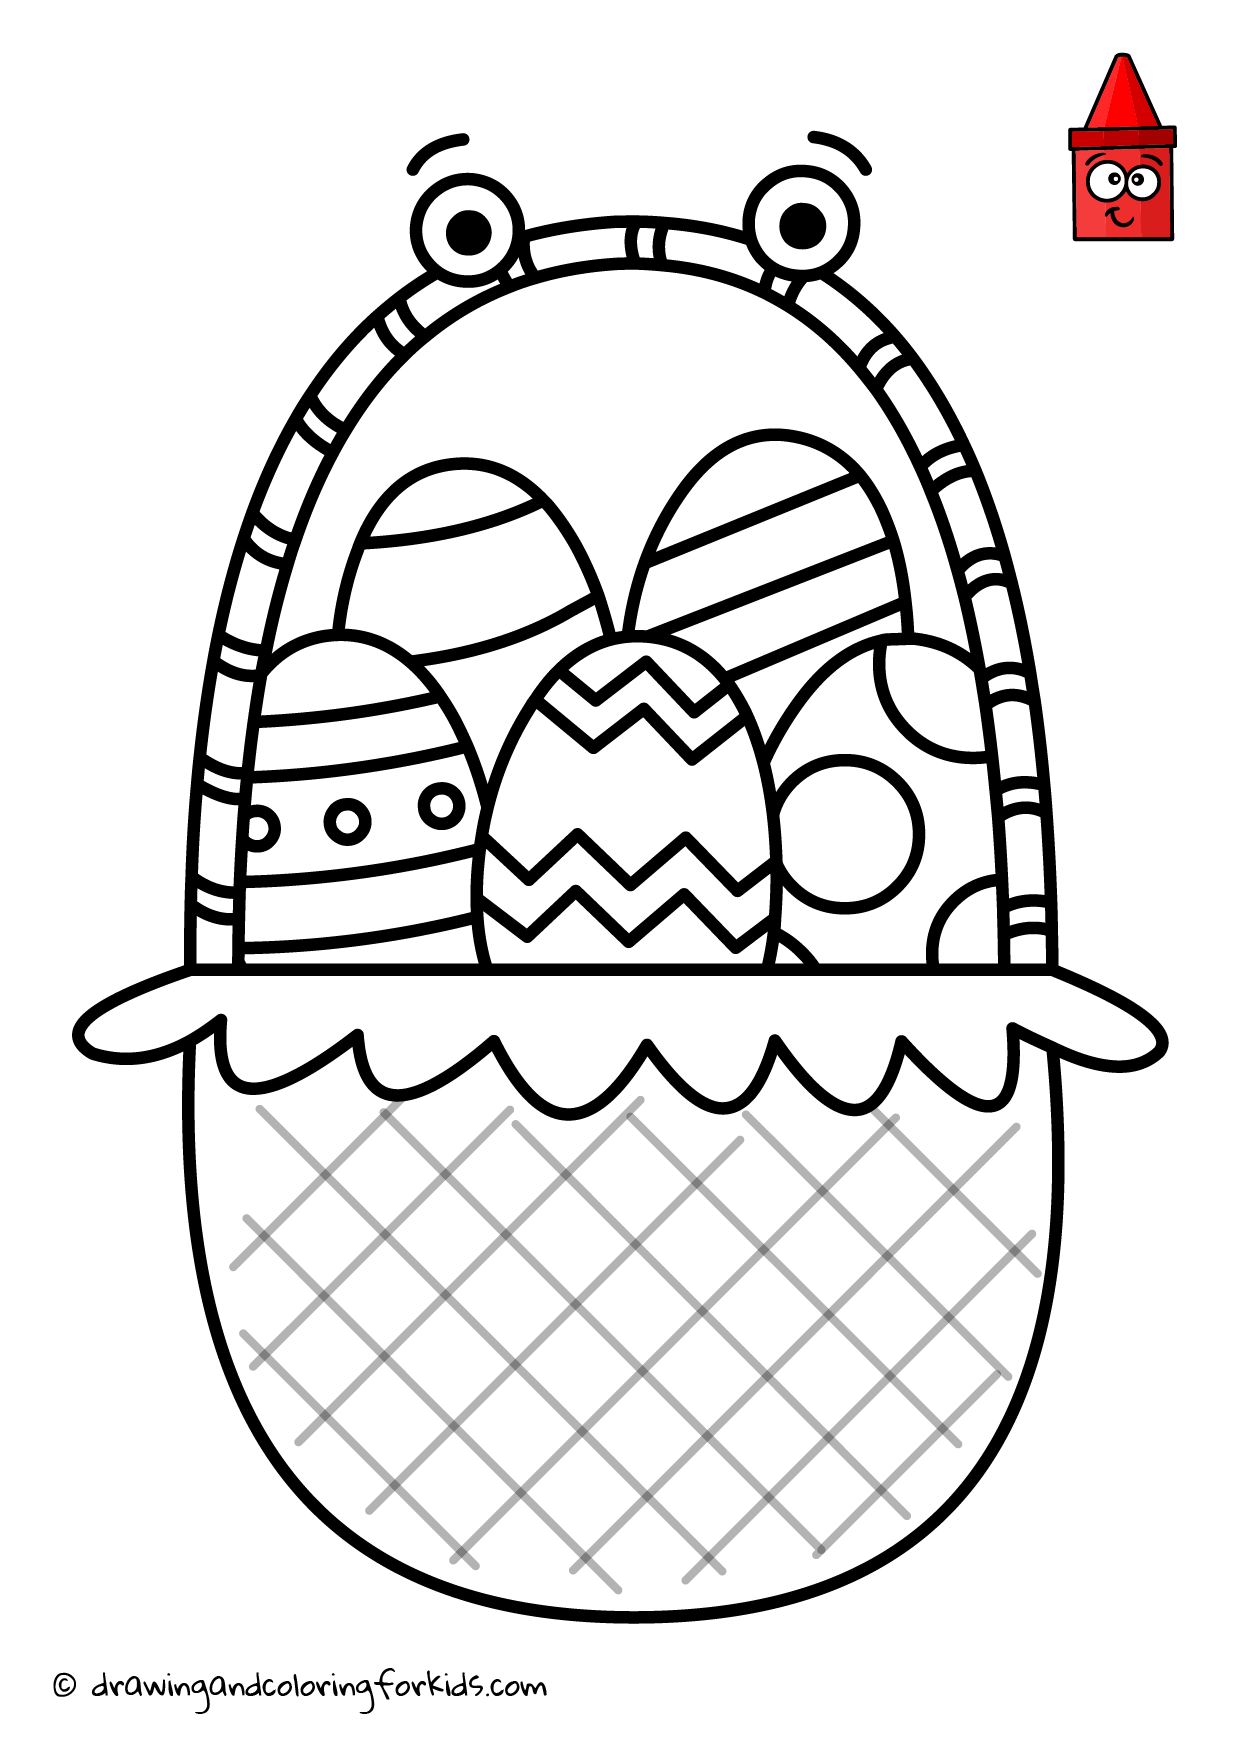 How To Draw Easter Basket | Easter Basket Ideas | Easter Coloring ...